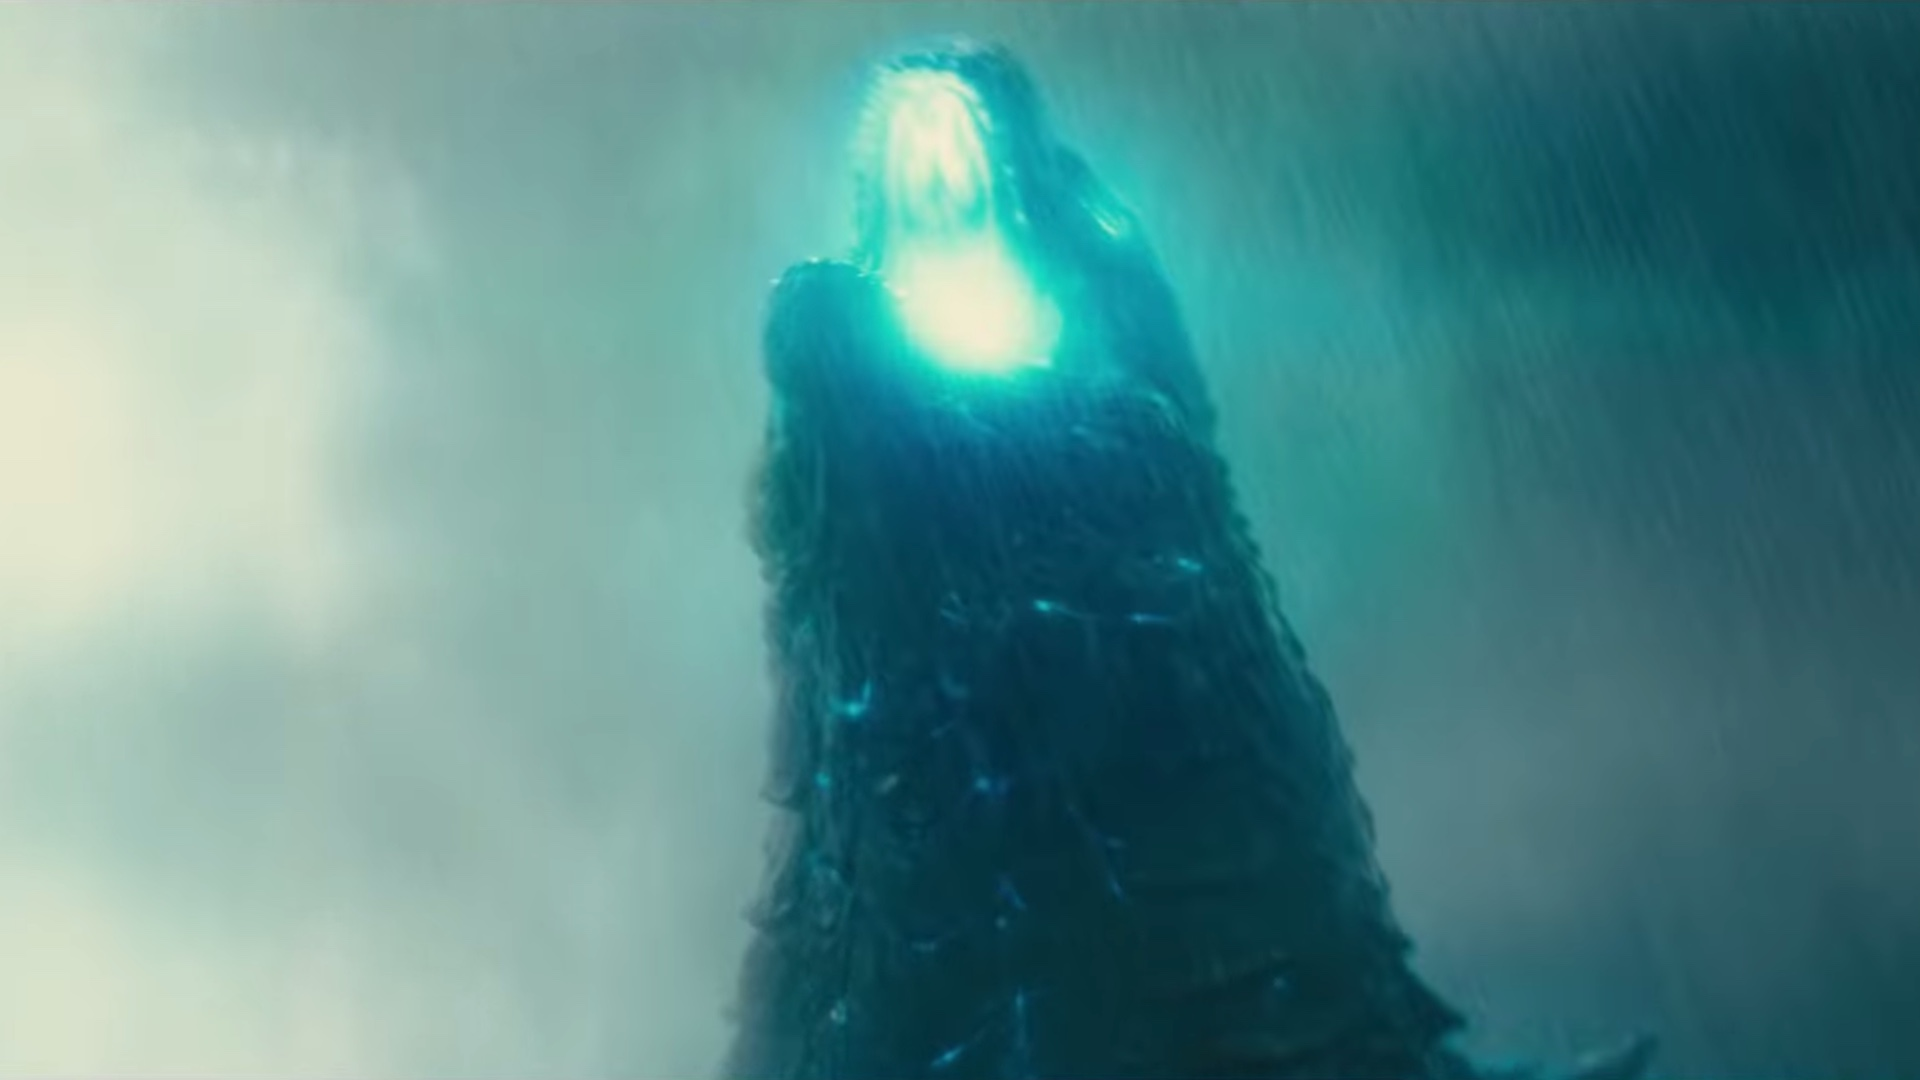 godzilla-displays-his-intimidation-tactics-in-new-tv-spot-for-godzilla-king-of-the-monsters-social.jpg